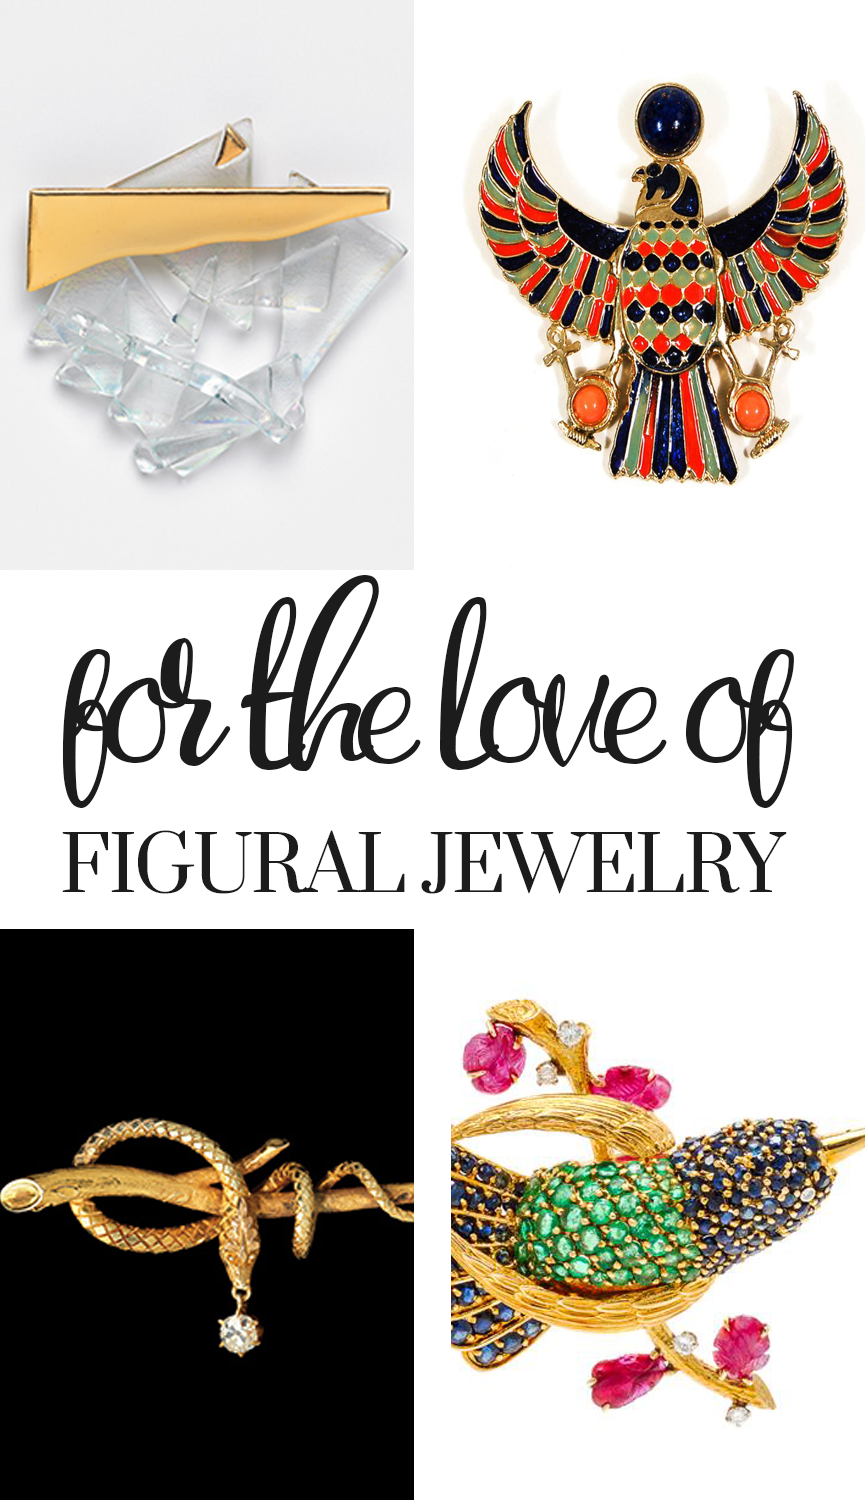 For the Love of Figural Jewelry